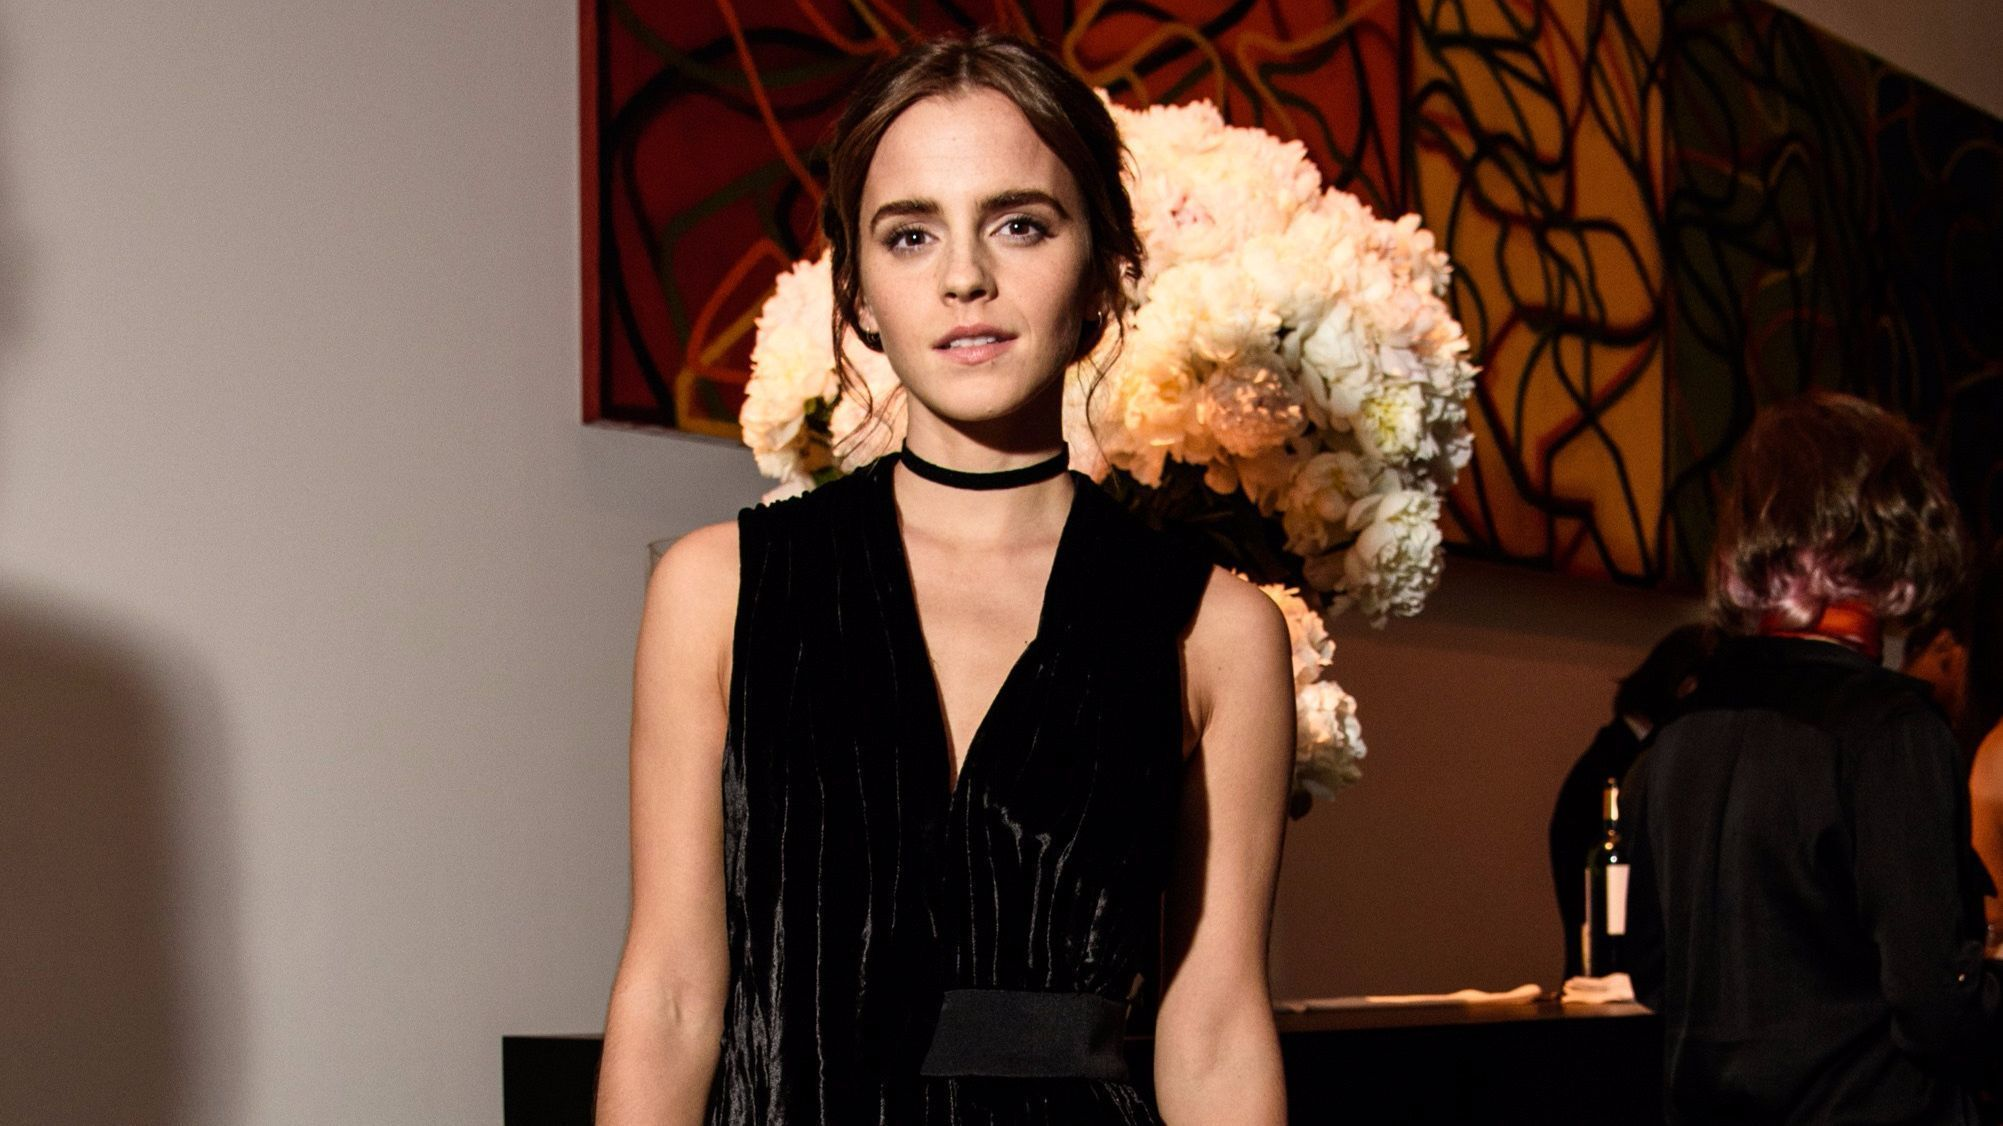 Emma Watson tracks her looks from 'Beauty and the Beast ...